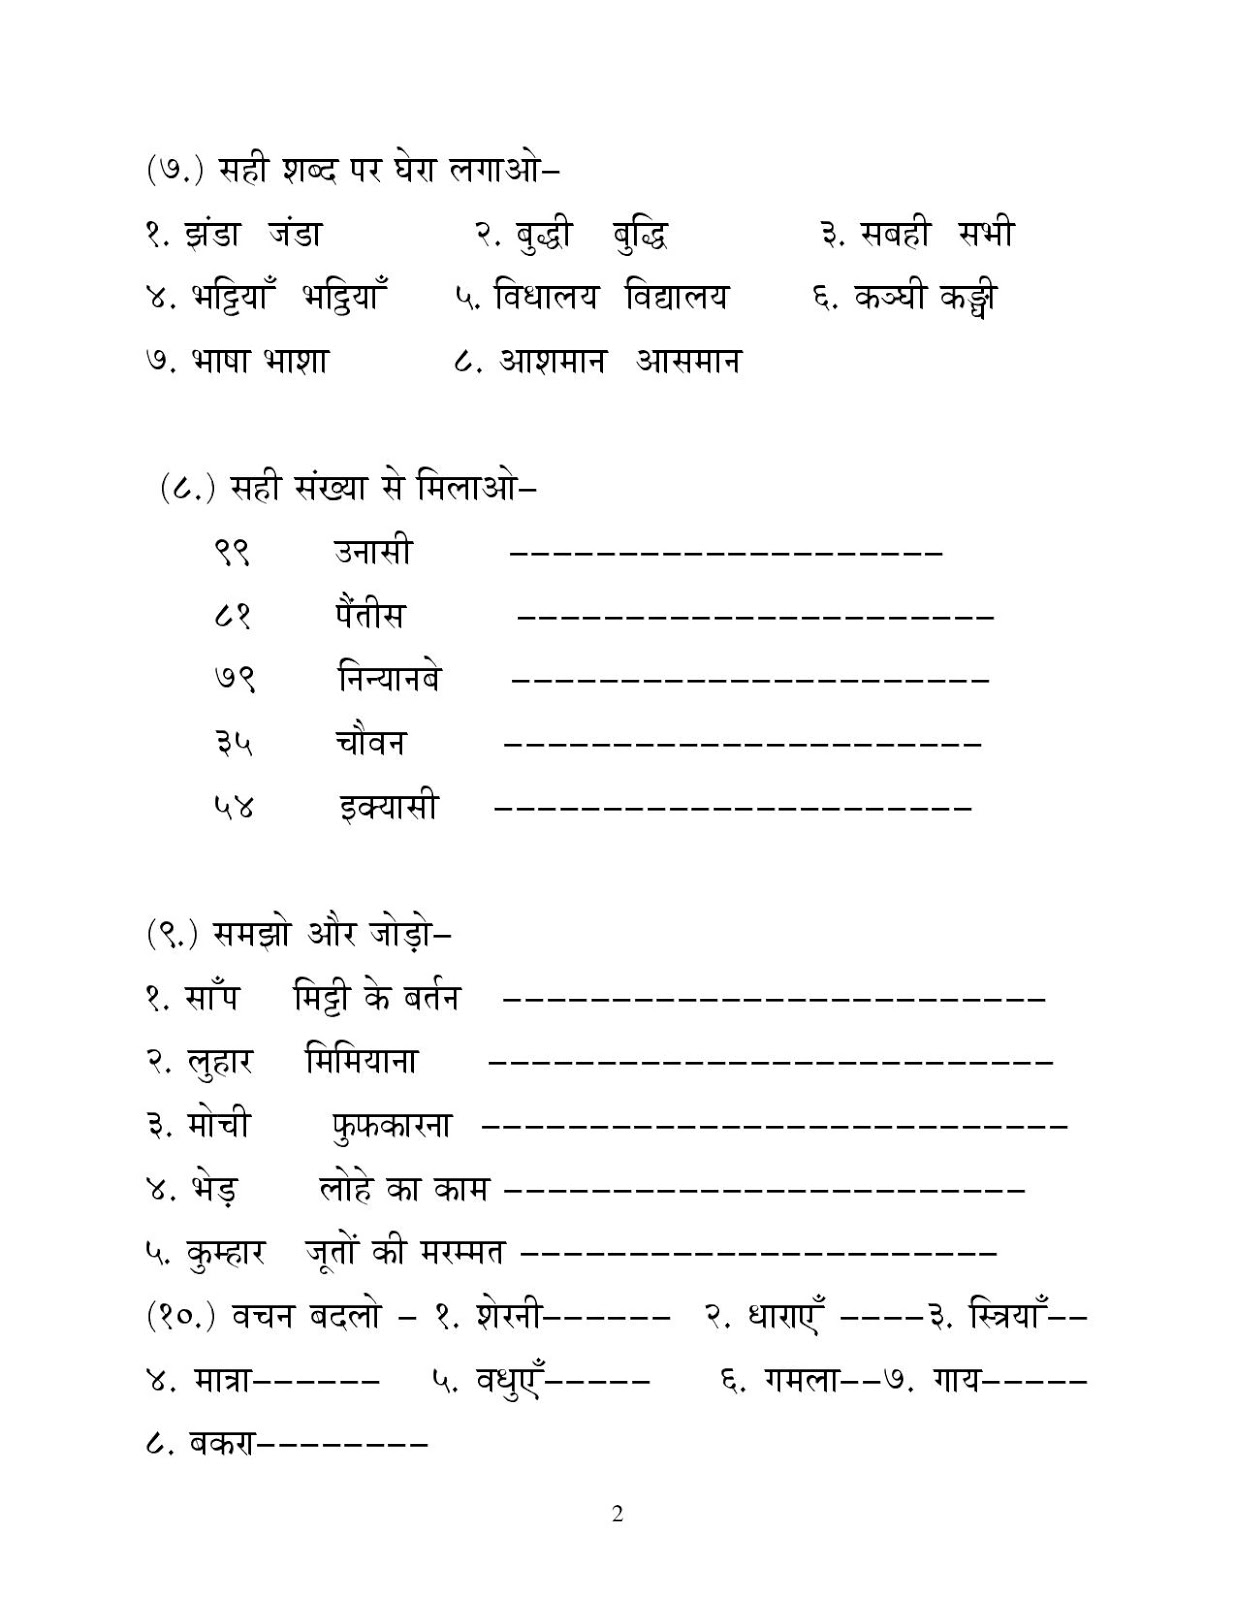 Hindi Vyakaran Worksheet For Class 4 Printable Worksheets And Activities Free Photos